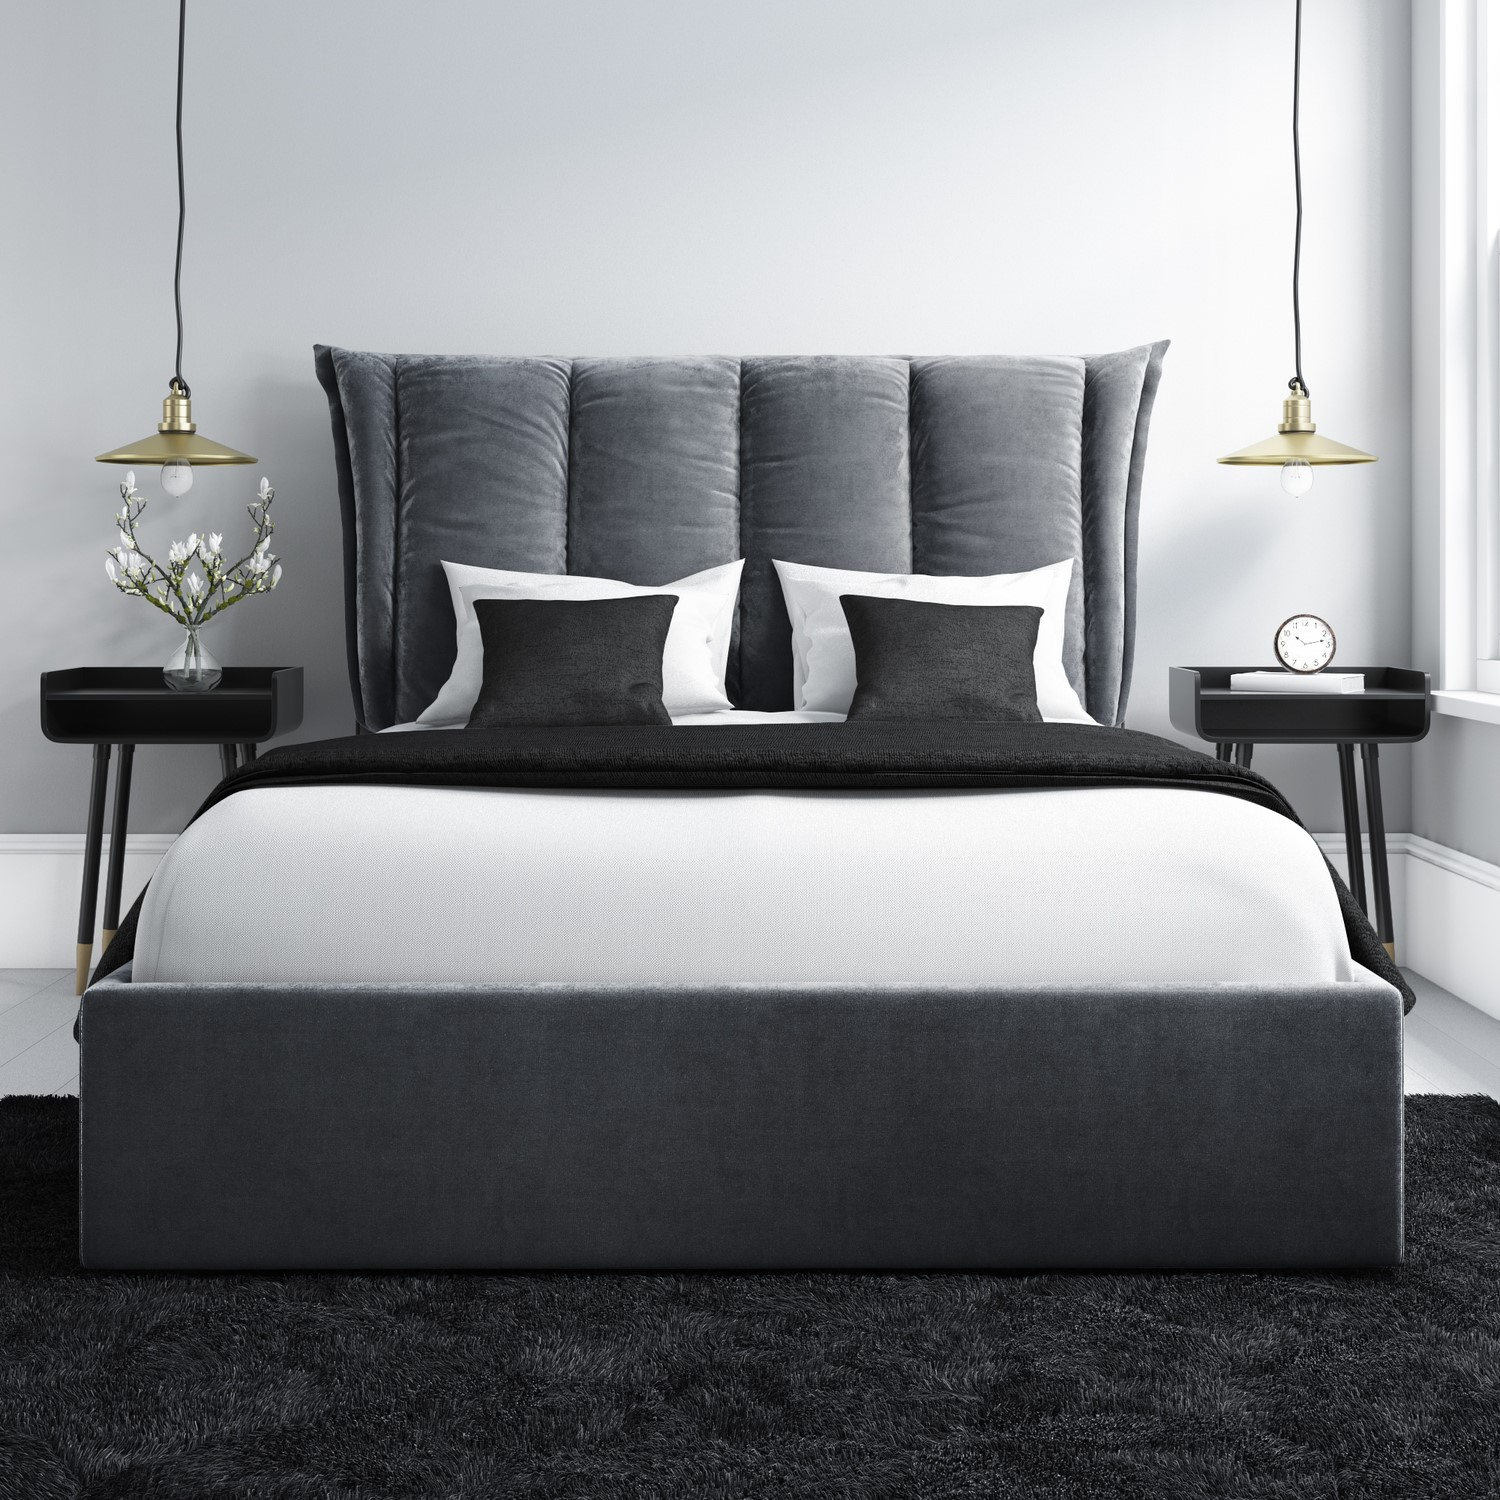 Maddox Double Ottoman Bed with Cushioned Headboard in Silver Grey Velvet